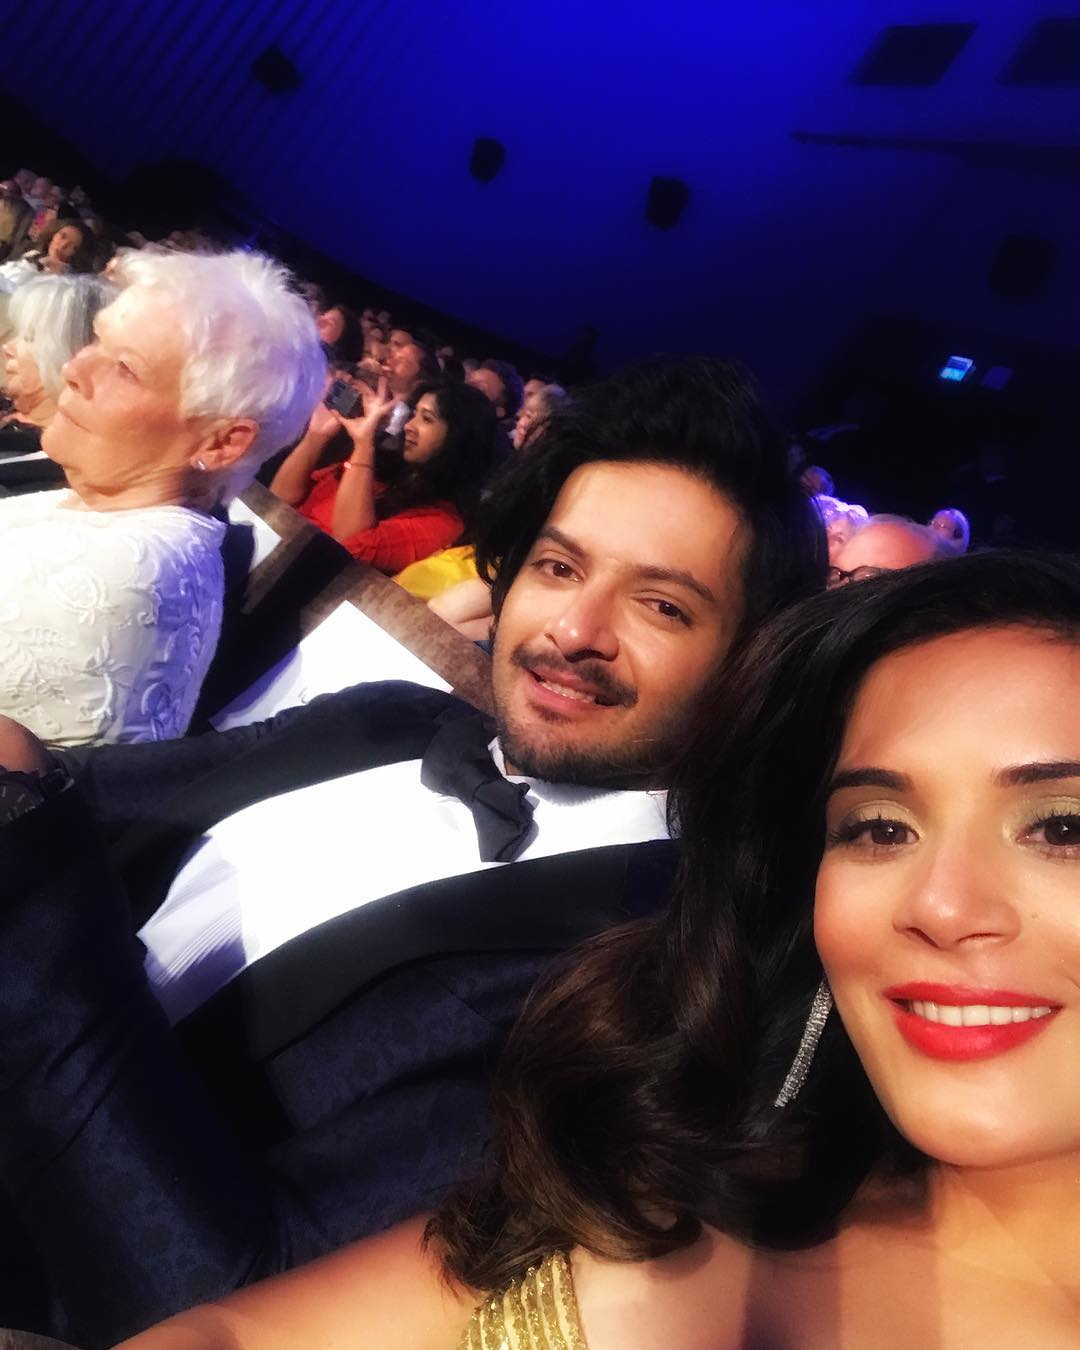 Ali Fazal and Richa Chadha together at the Venice Film Festival